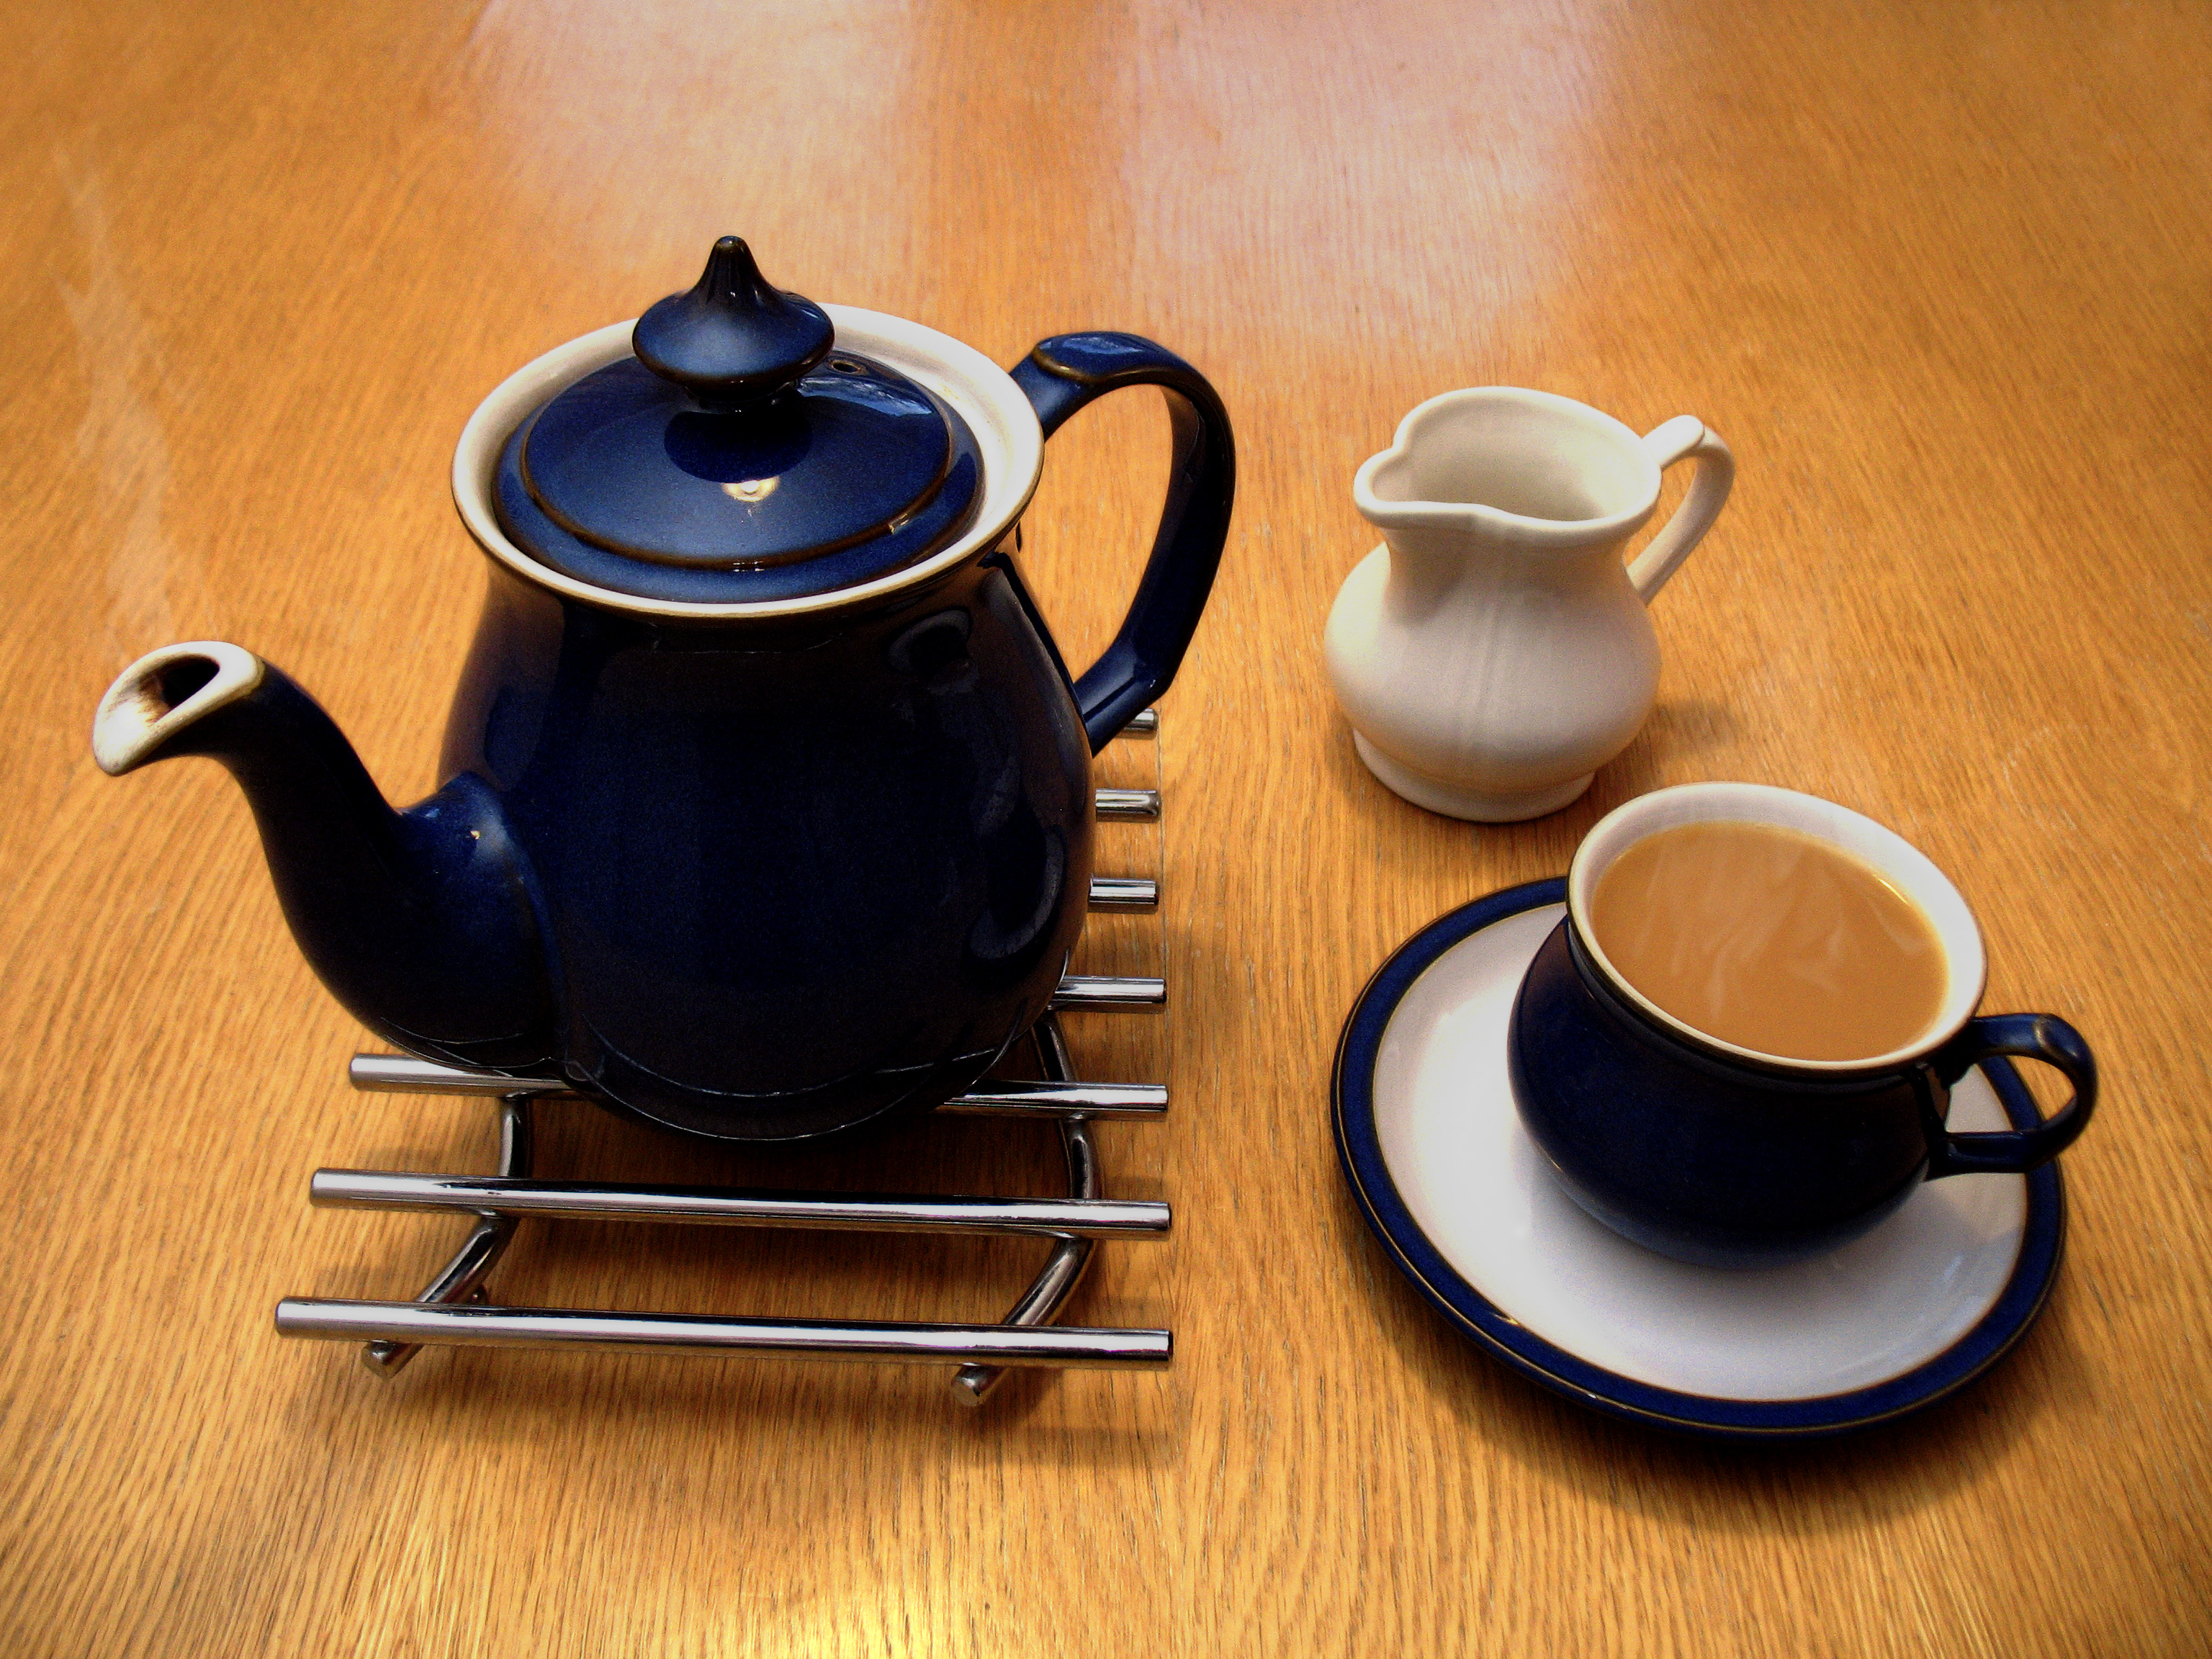 Black Tea Is Often Taken With Milk